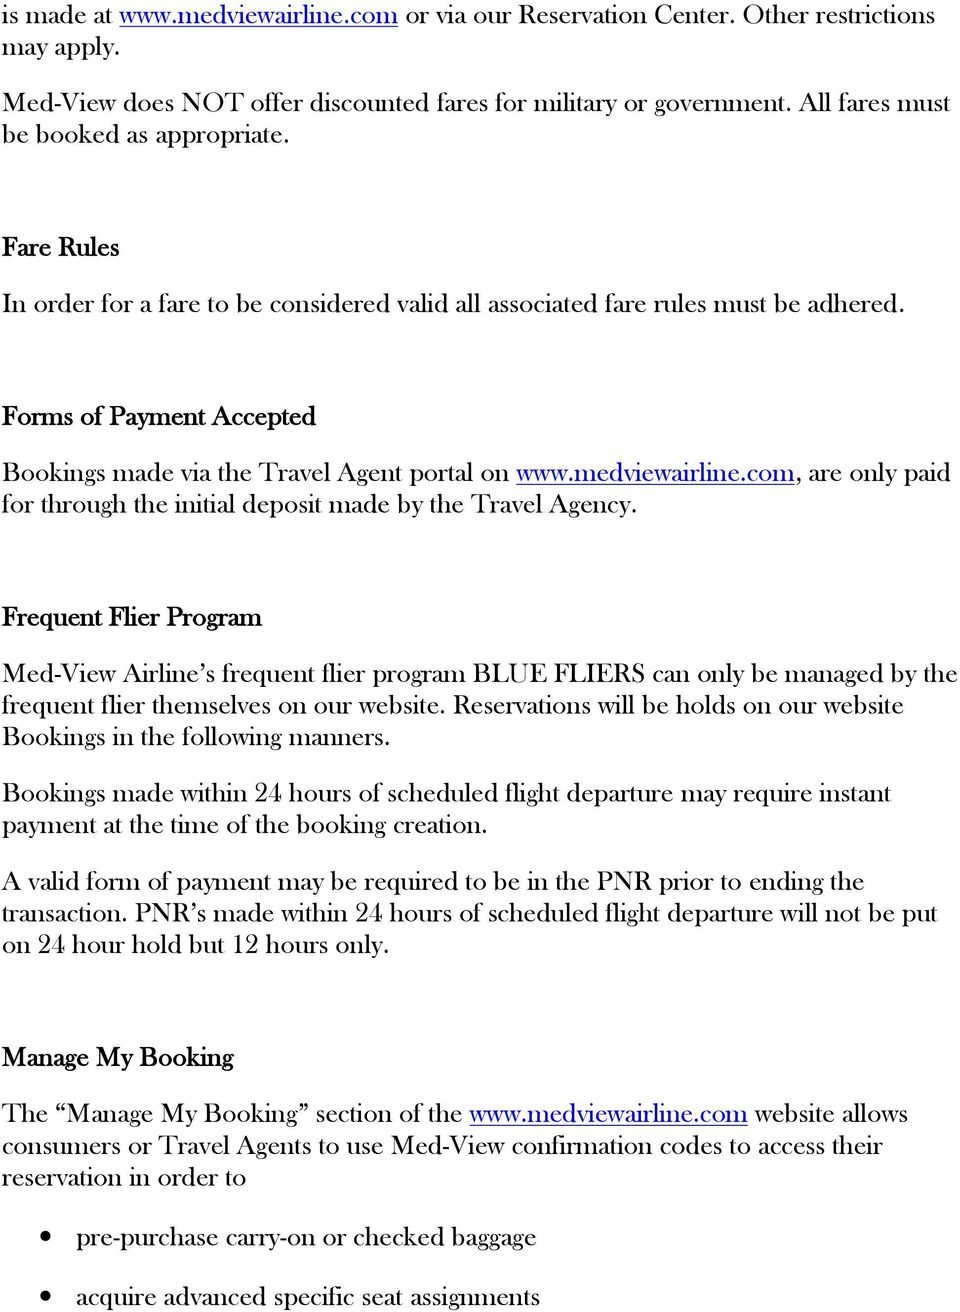 MED-VIEW AIRLINE BOOKING POLICIES AND PROCEDURES FOR TRAVEL